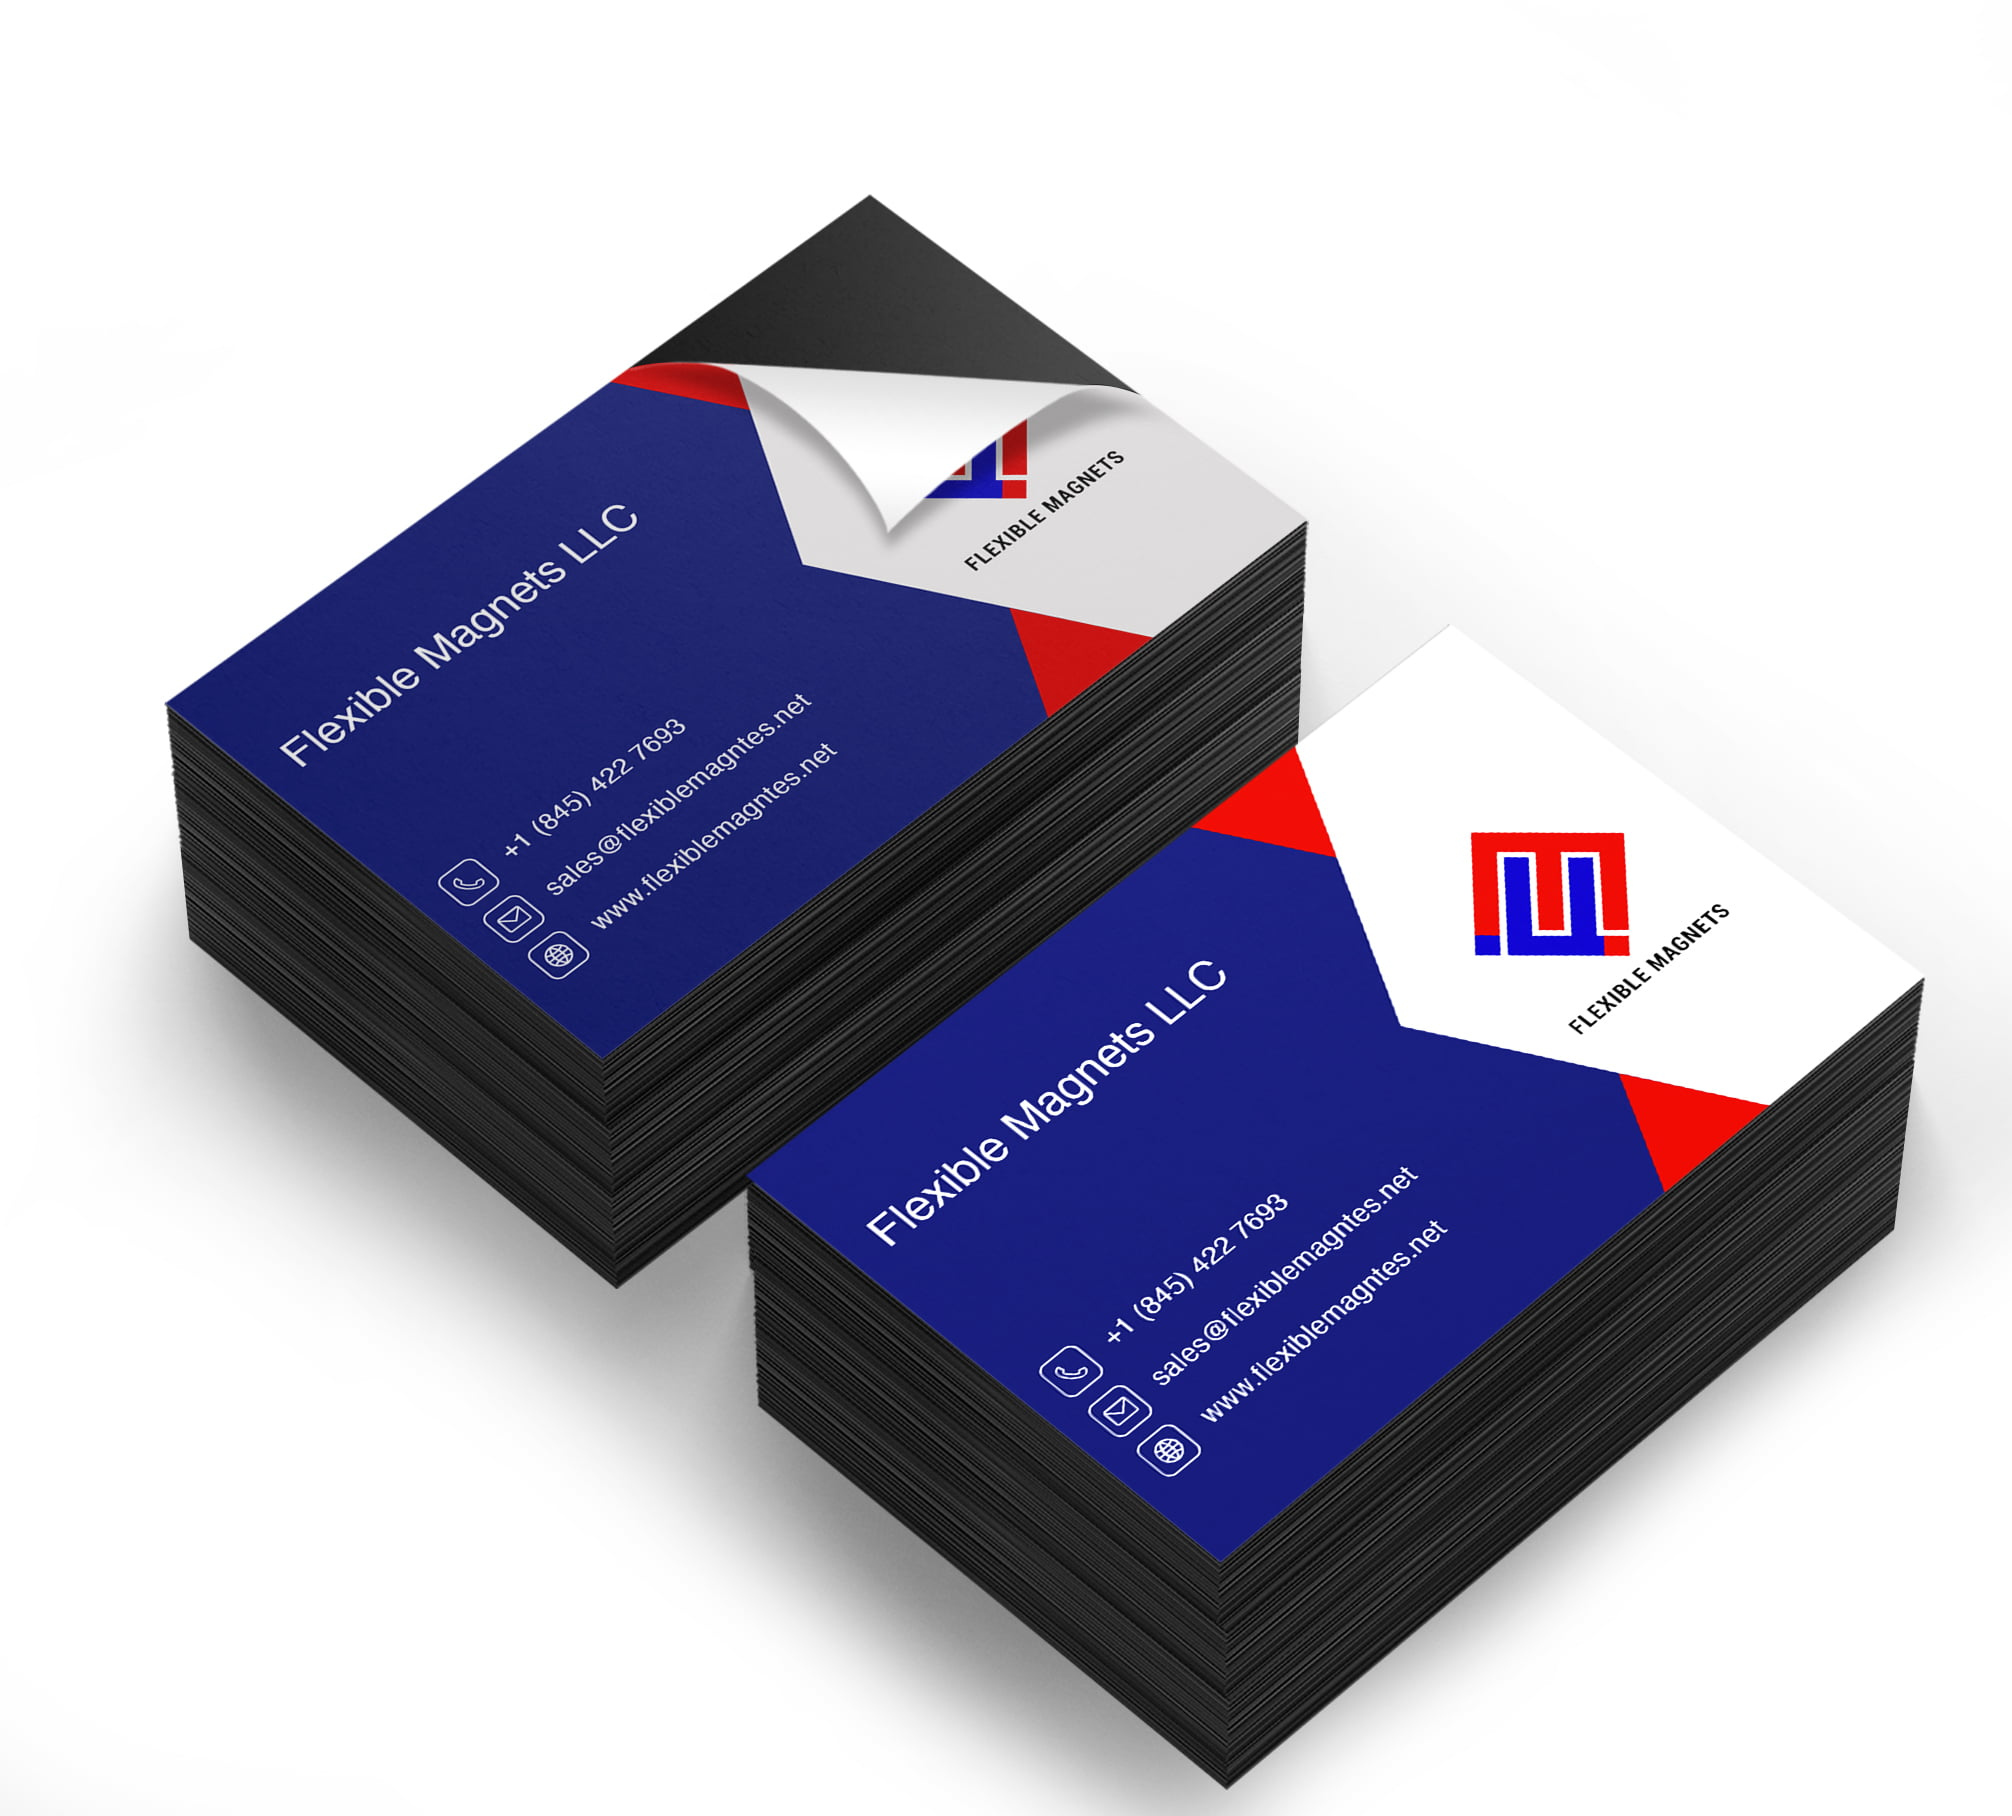 20 X 2000 Adhesive Magnetic Business Card Magnets 20 mil Peel and ...